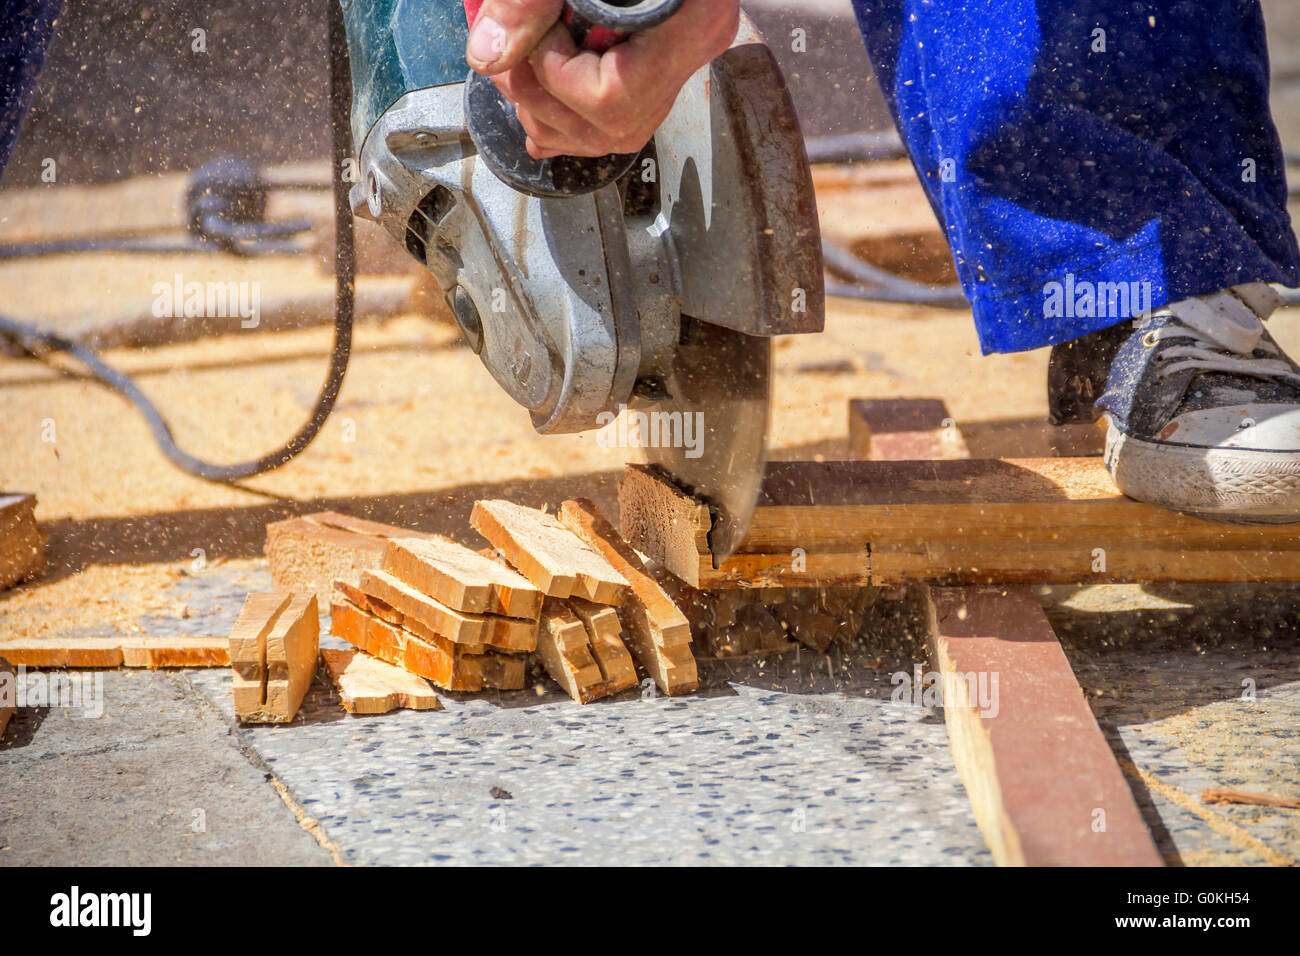 Carpenter Using An Electric Saw Cutting Small Wooden Figures